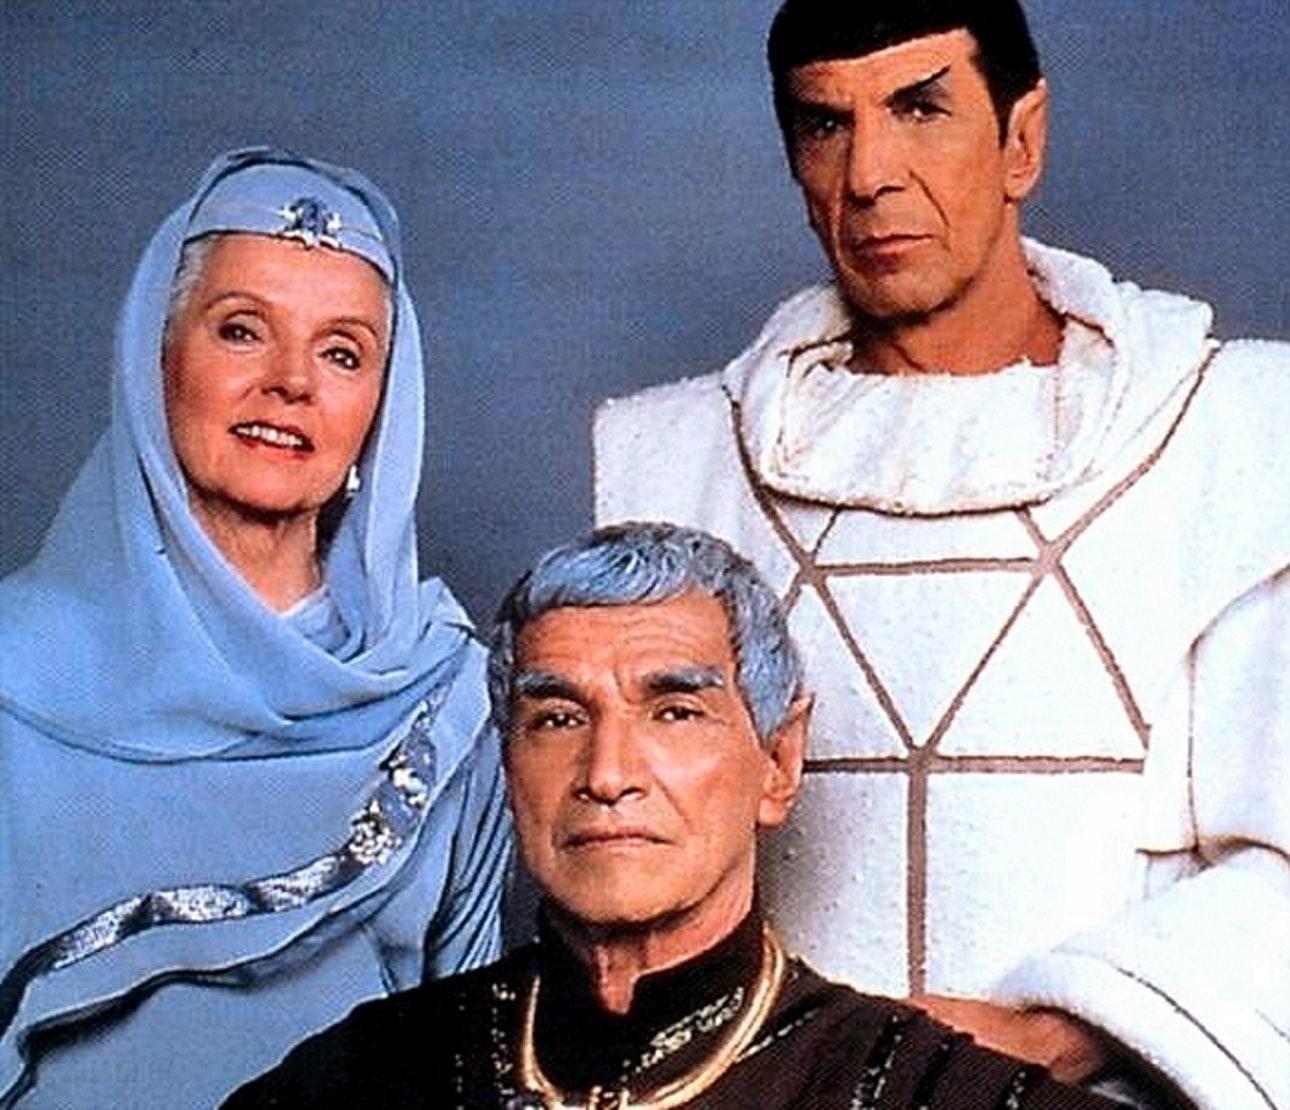 Spock and his parents in 'Star Trek IV: The Voyage Home'